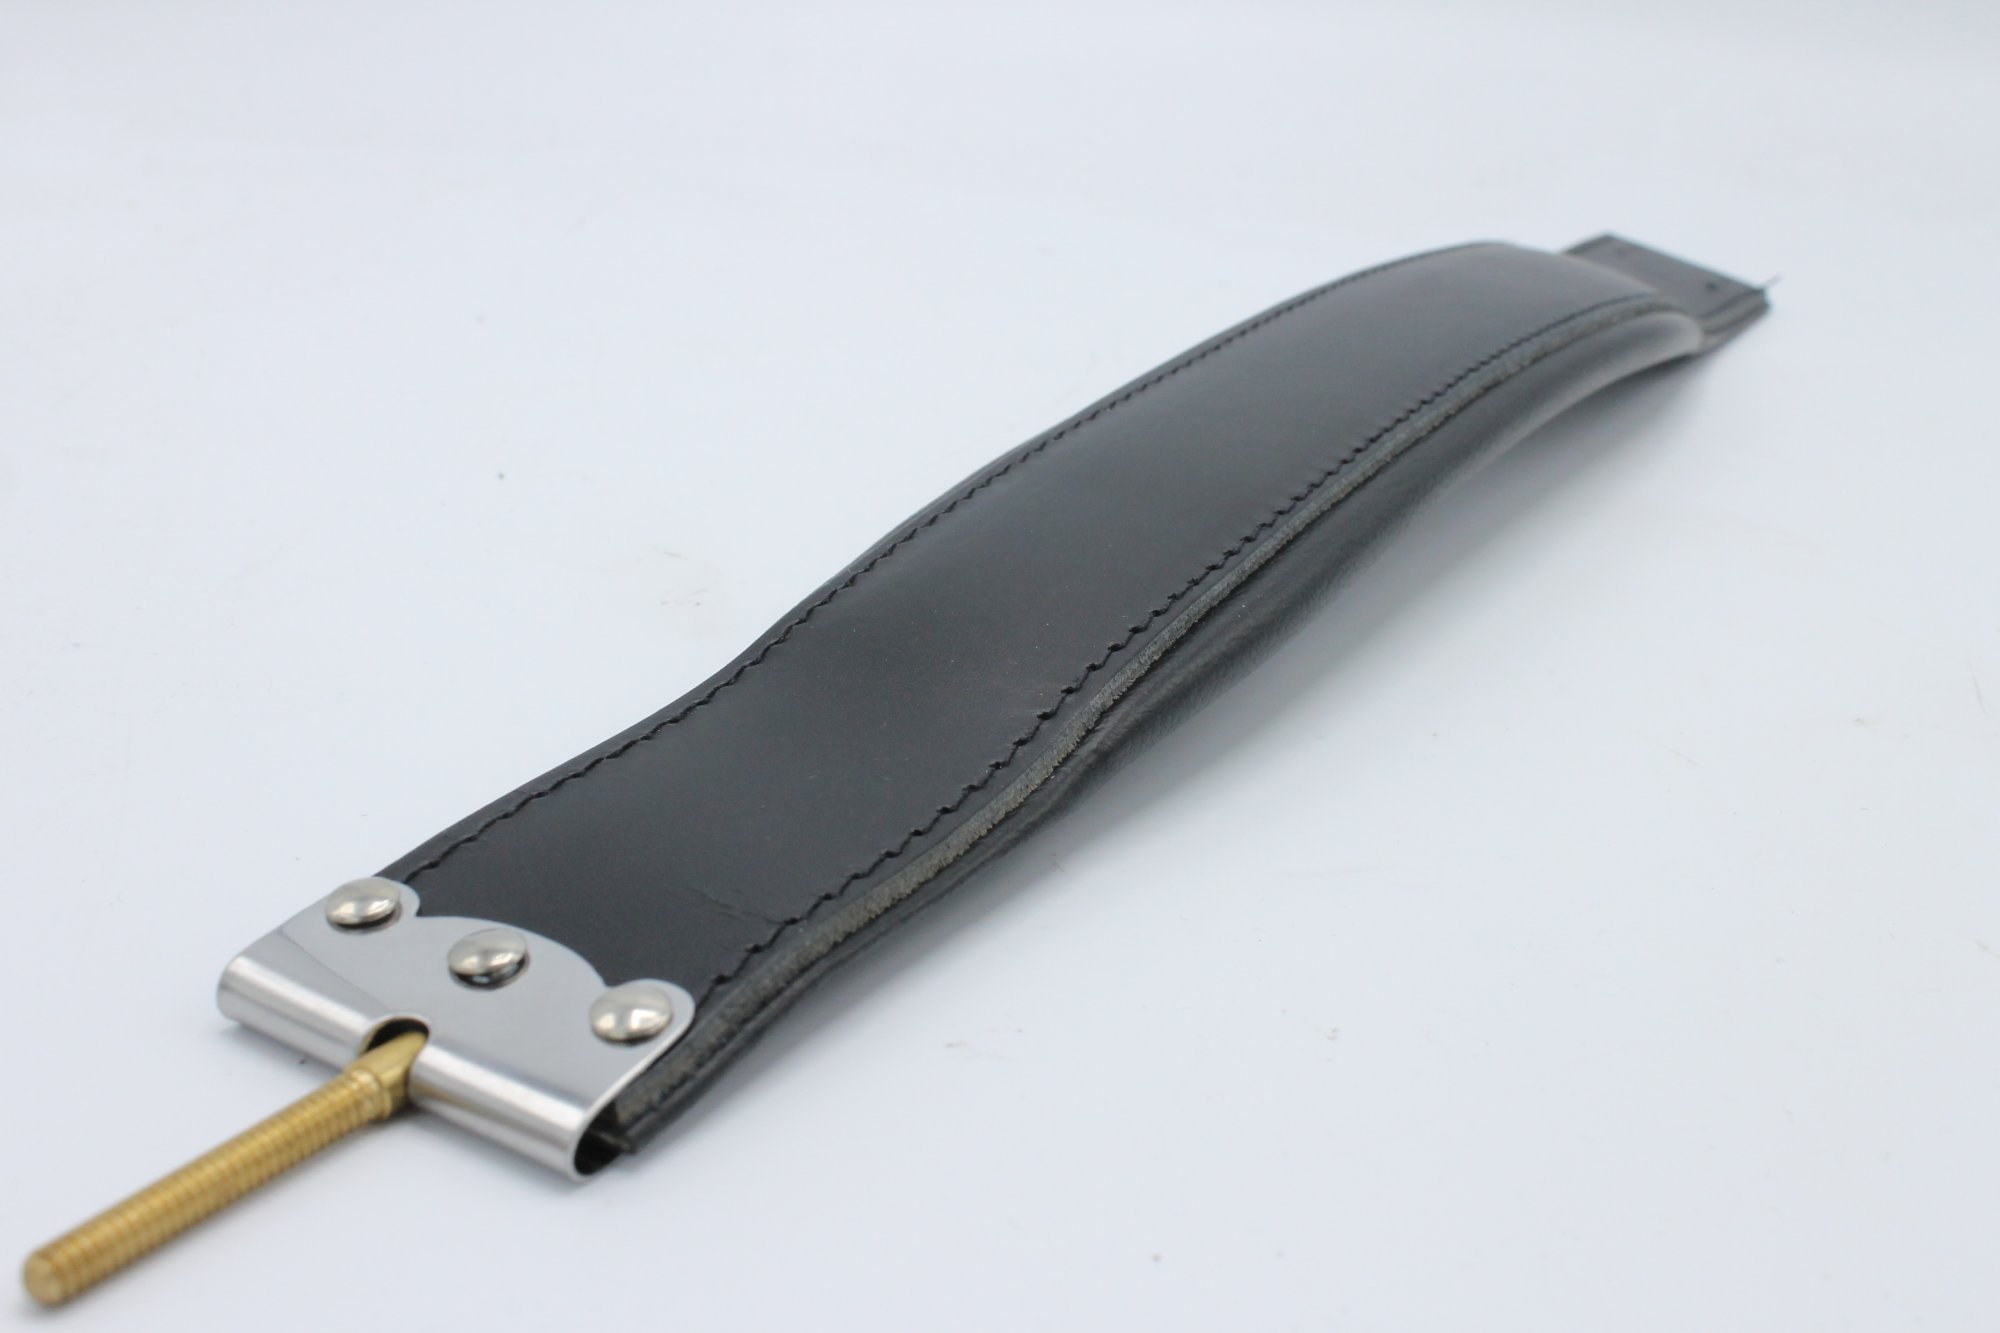 New Black Leather Fuselli Accordion Bass Hand Strap Width (2.2in/5.5cm) Length (17.75in/45cm)